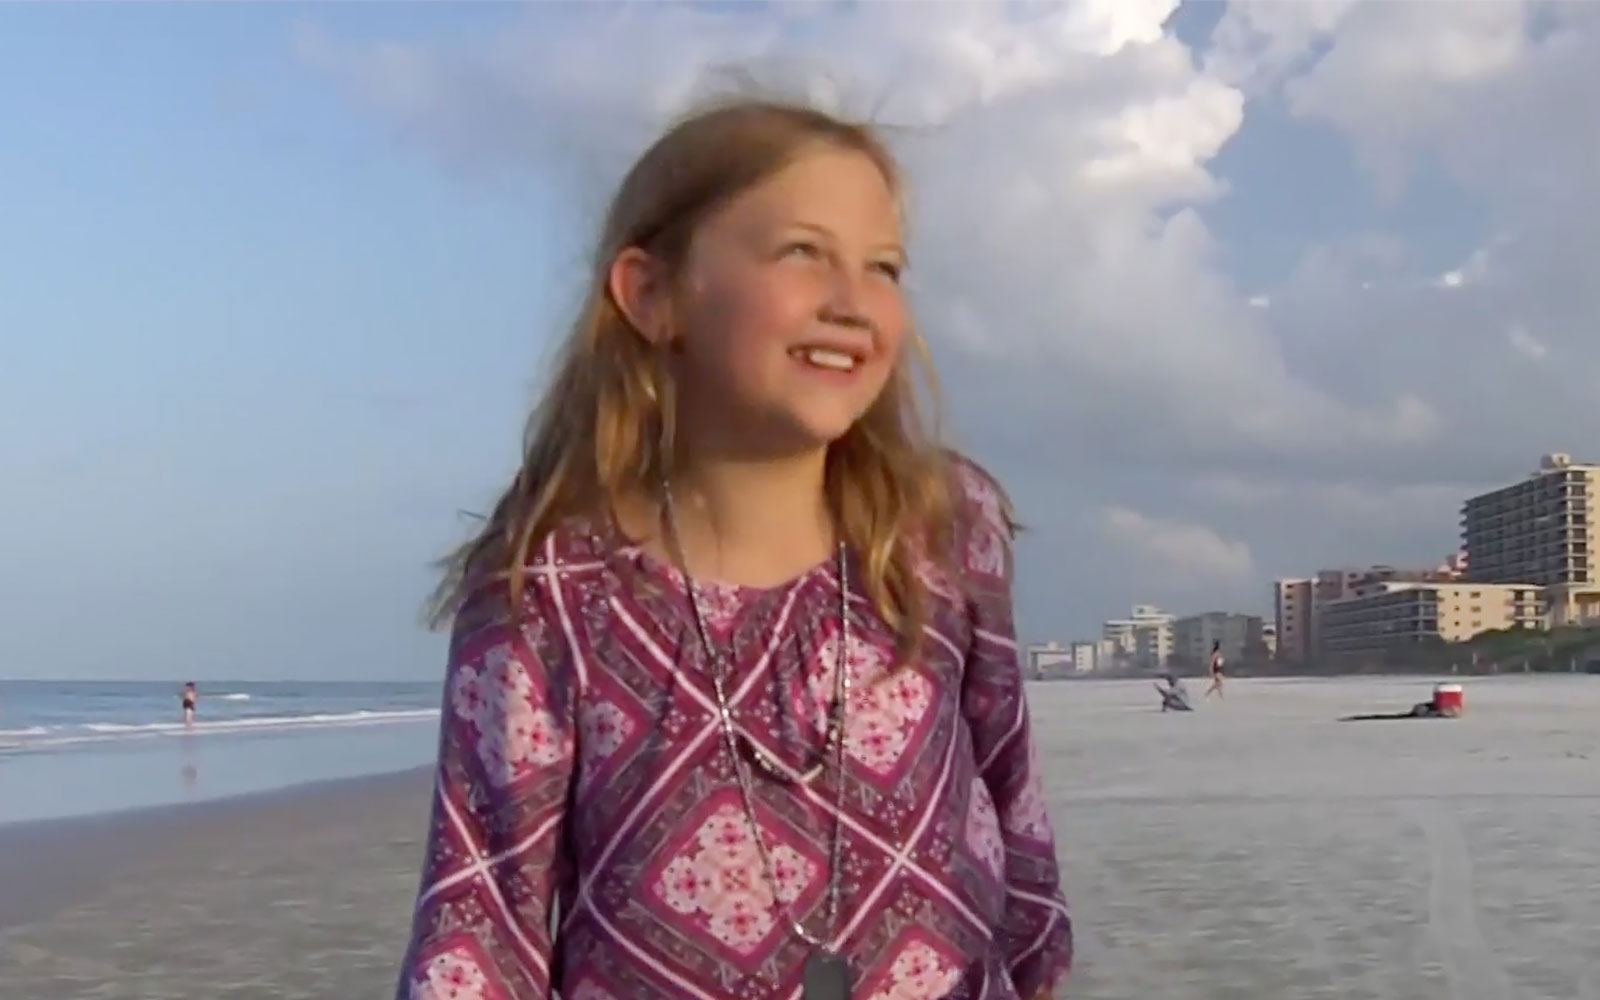 This 9-year-old Girl Says She'll Return to the Water After Surviving Shark Attack